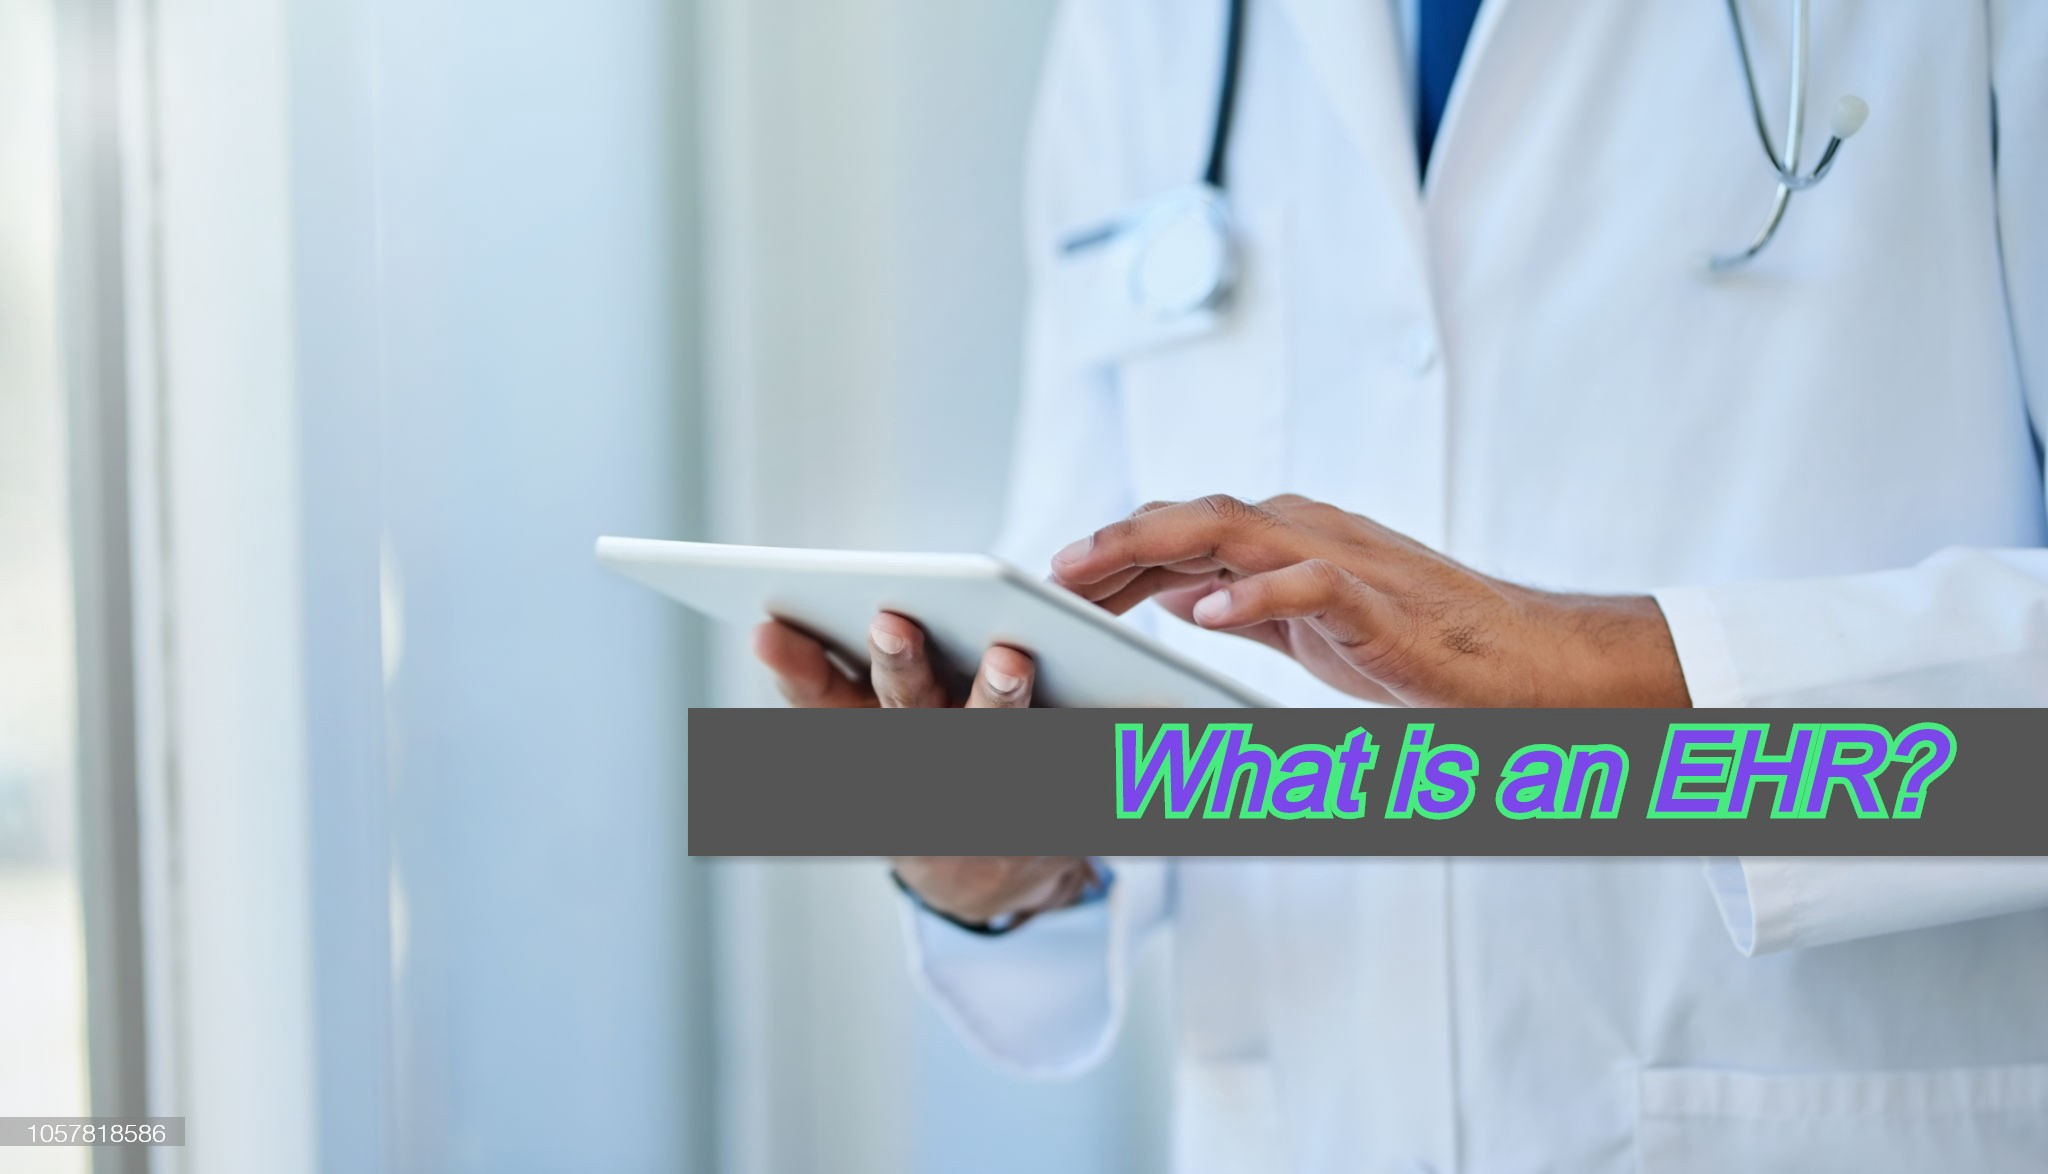 What is an EHR?